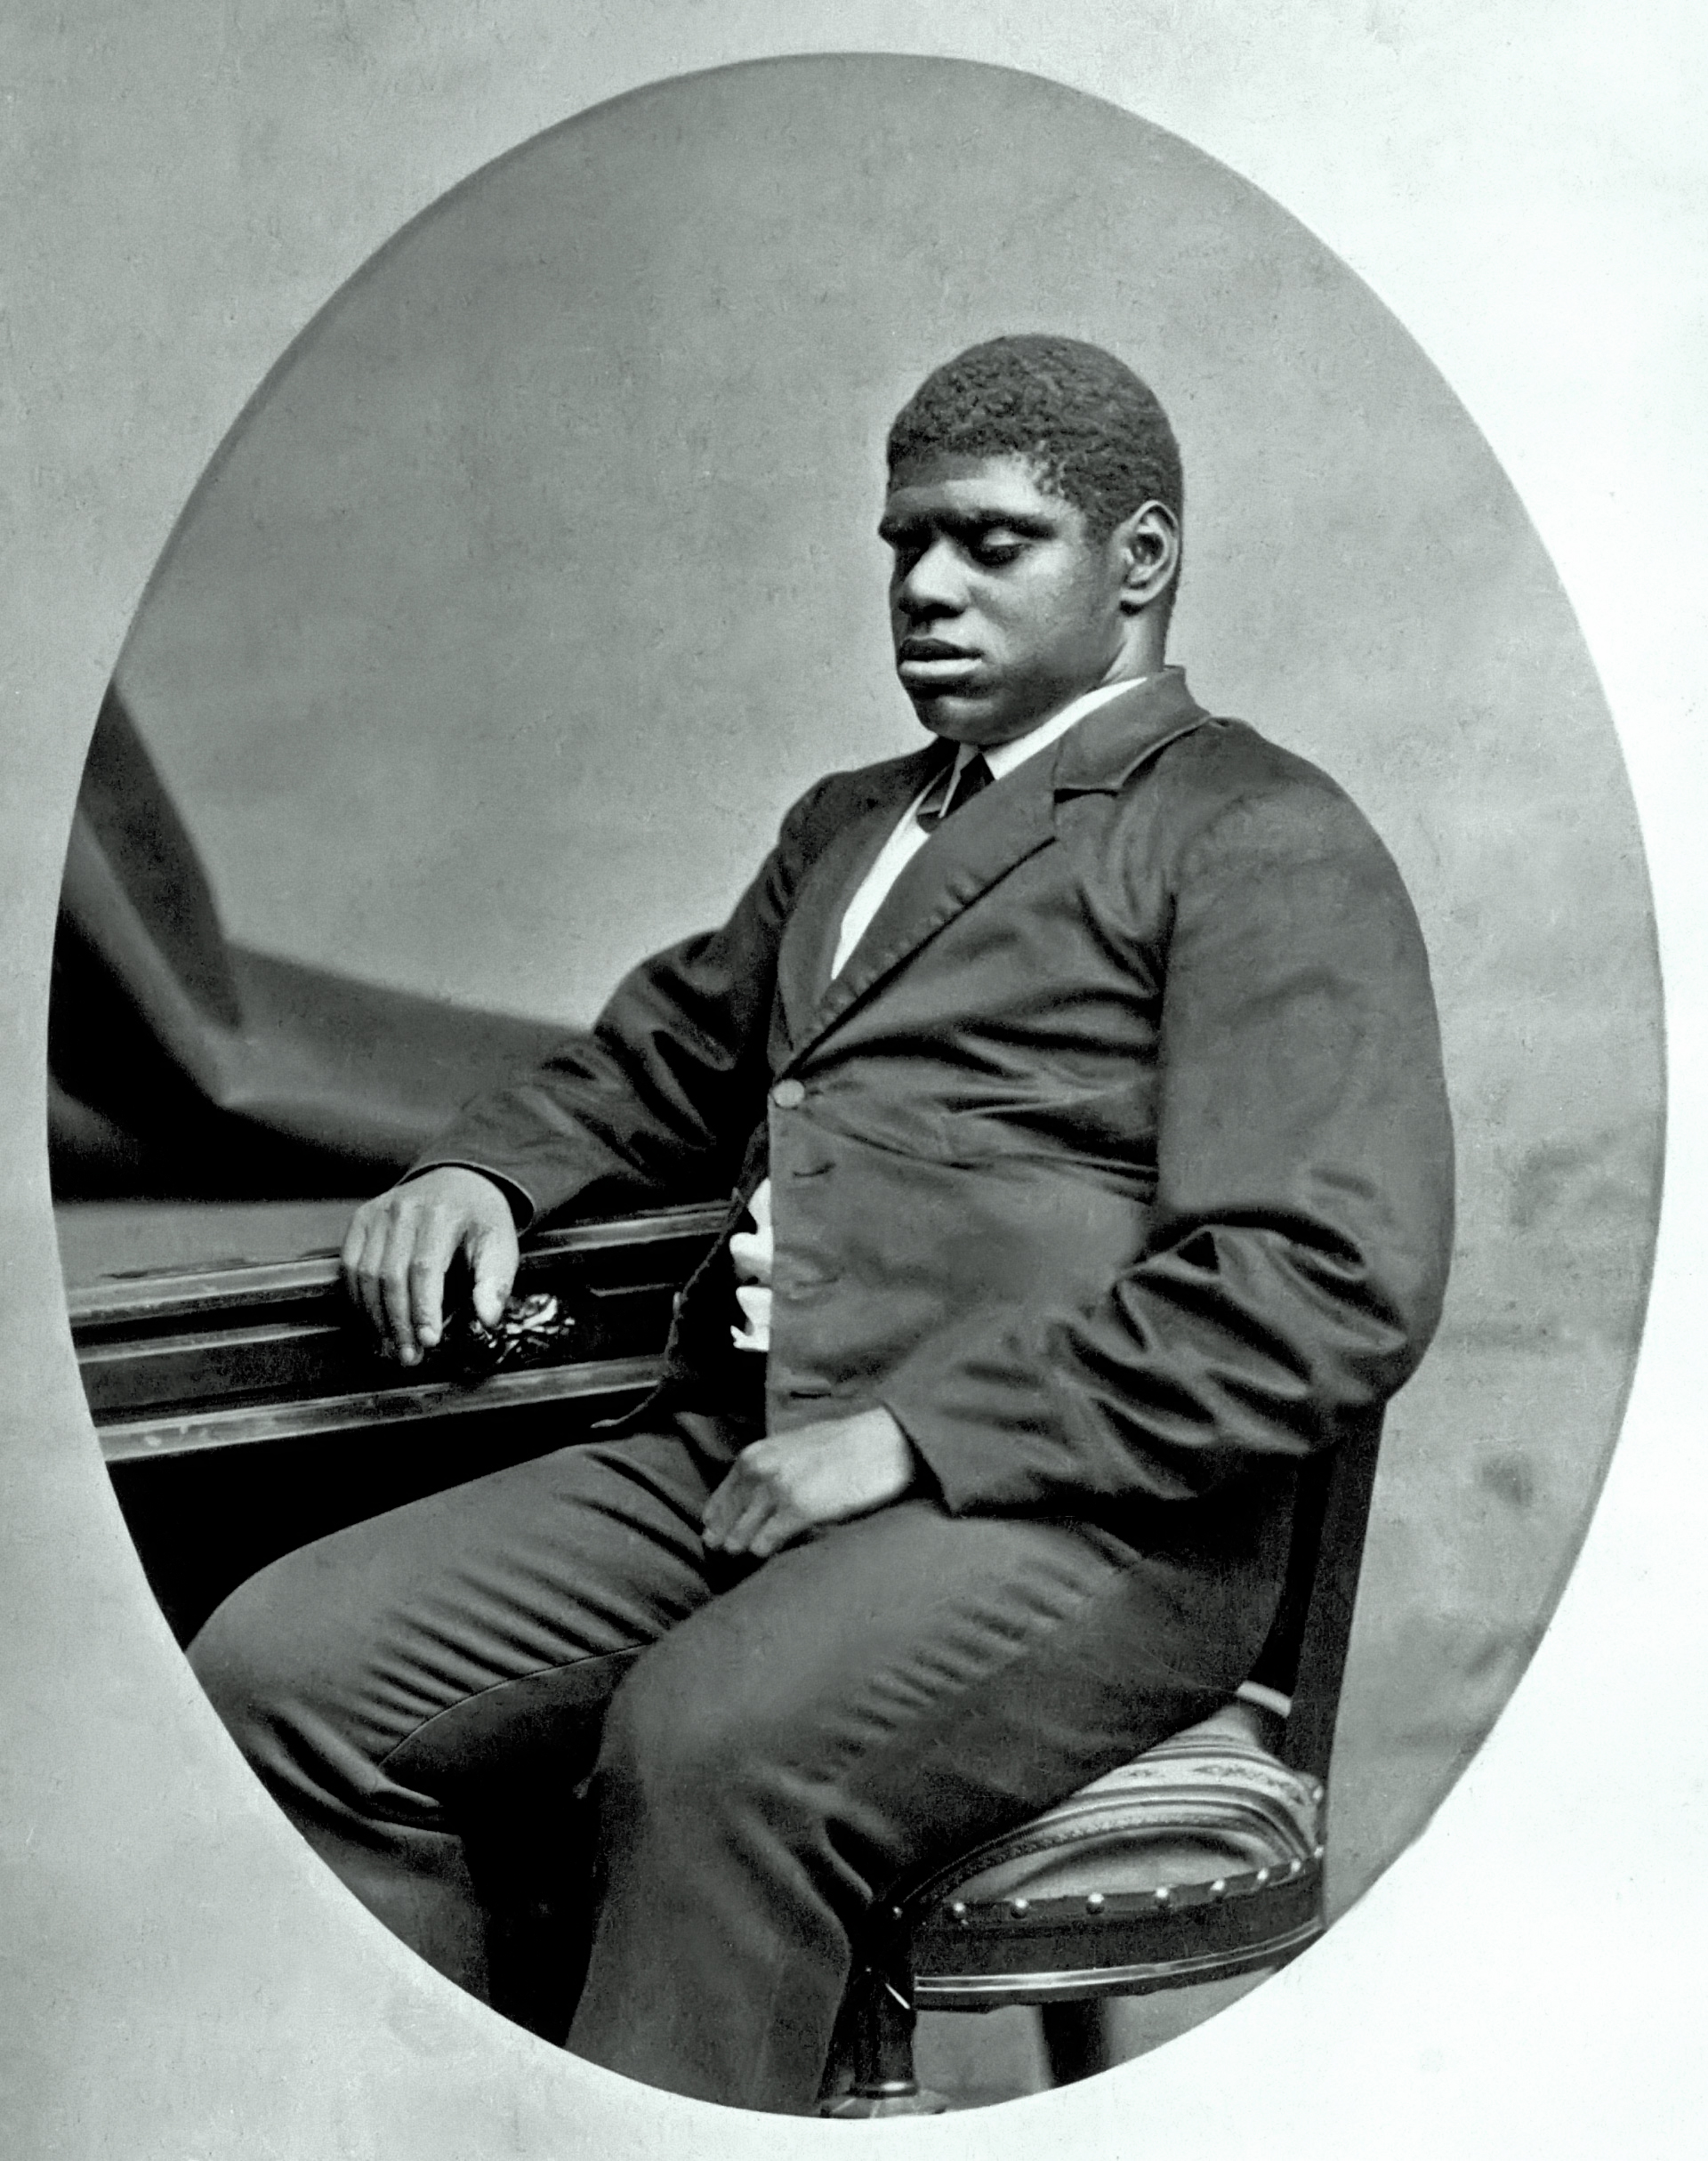 Thomas 'Blind Tom' Wiggins